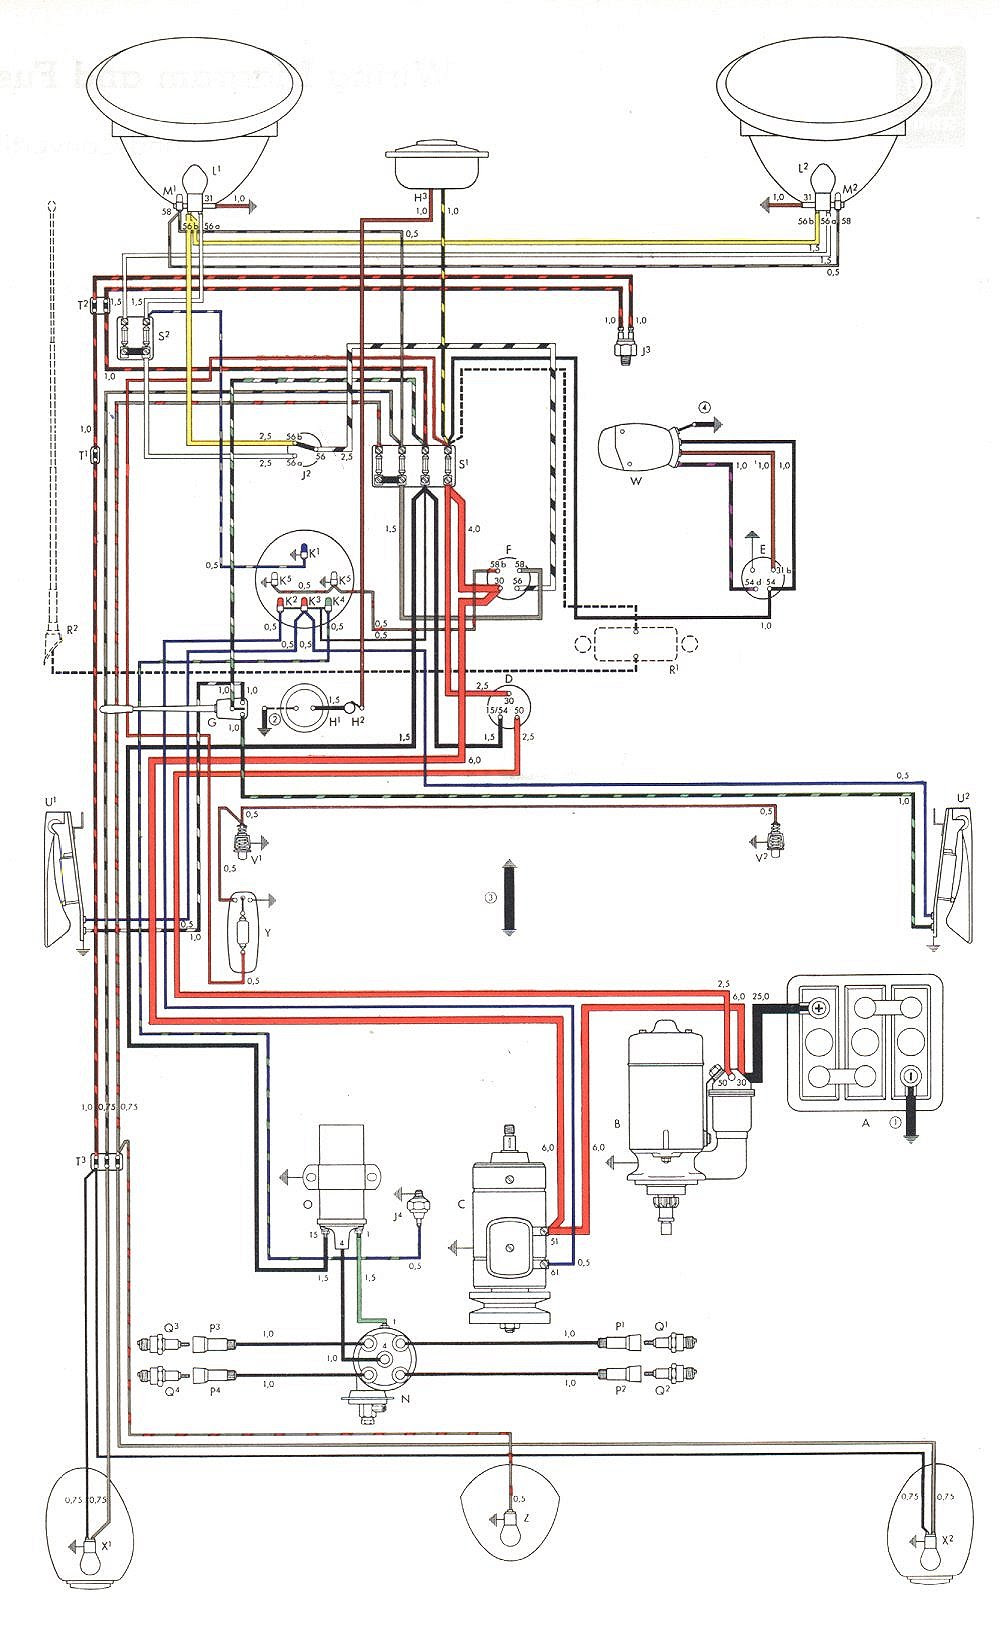 A90c1f 1970 Vw Wiper Motor Wiring Diagram Wiring Library